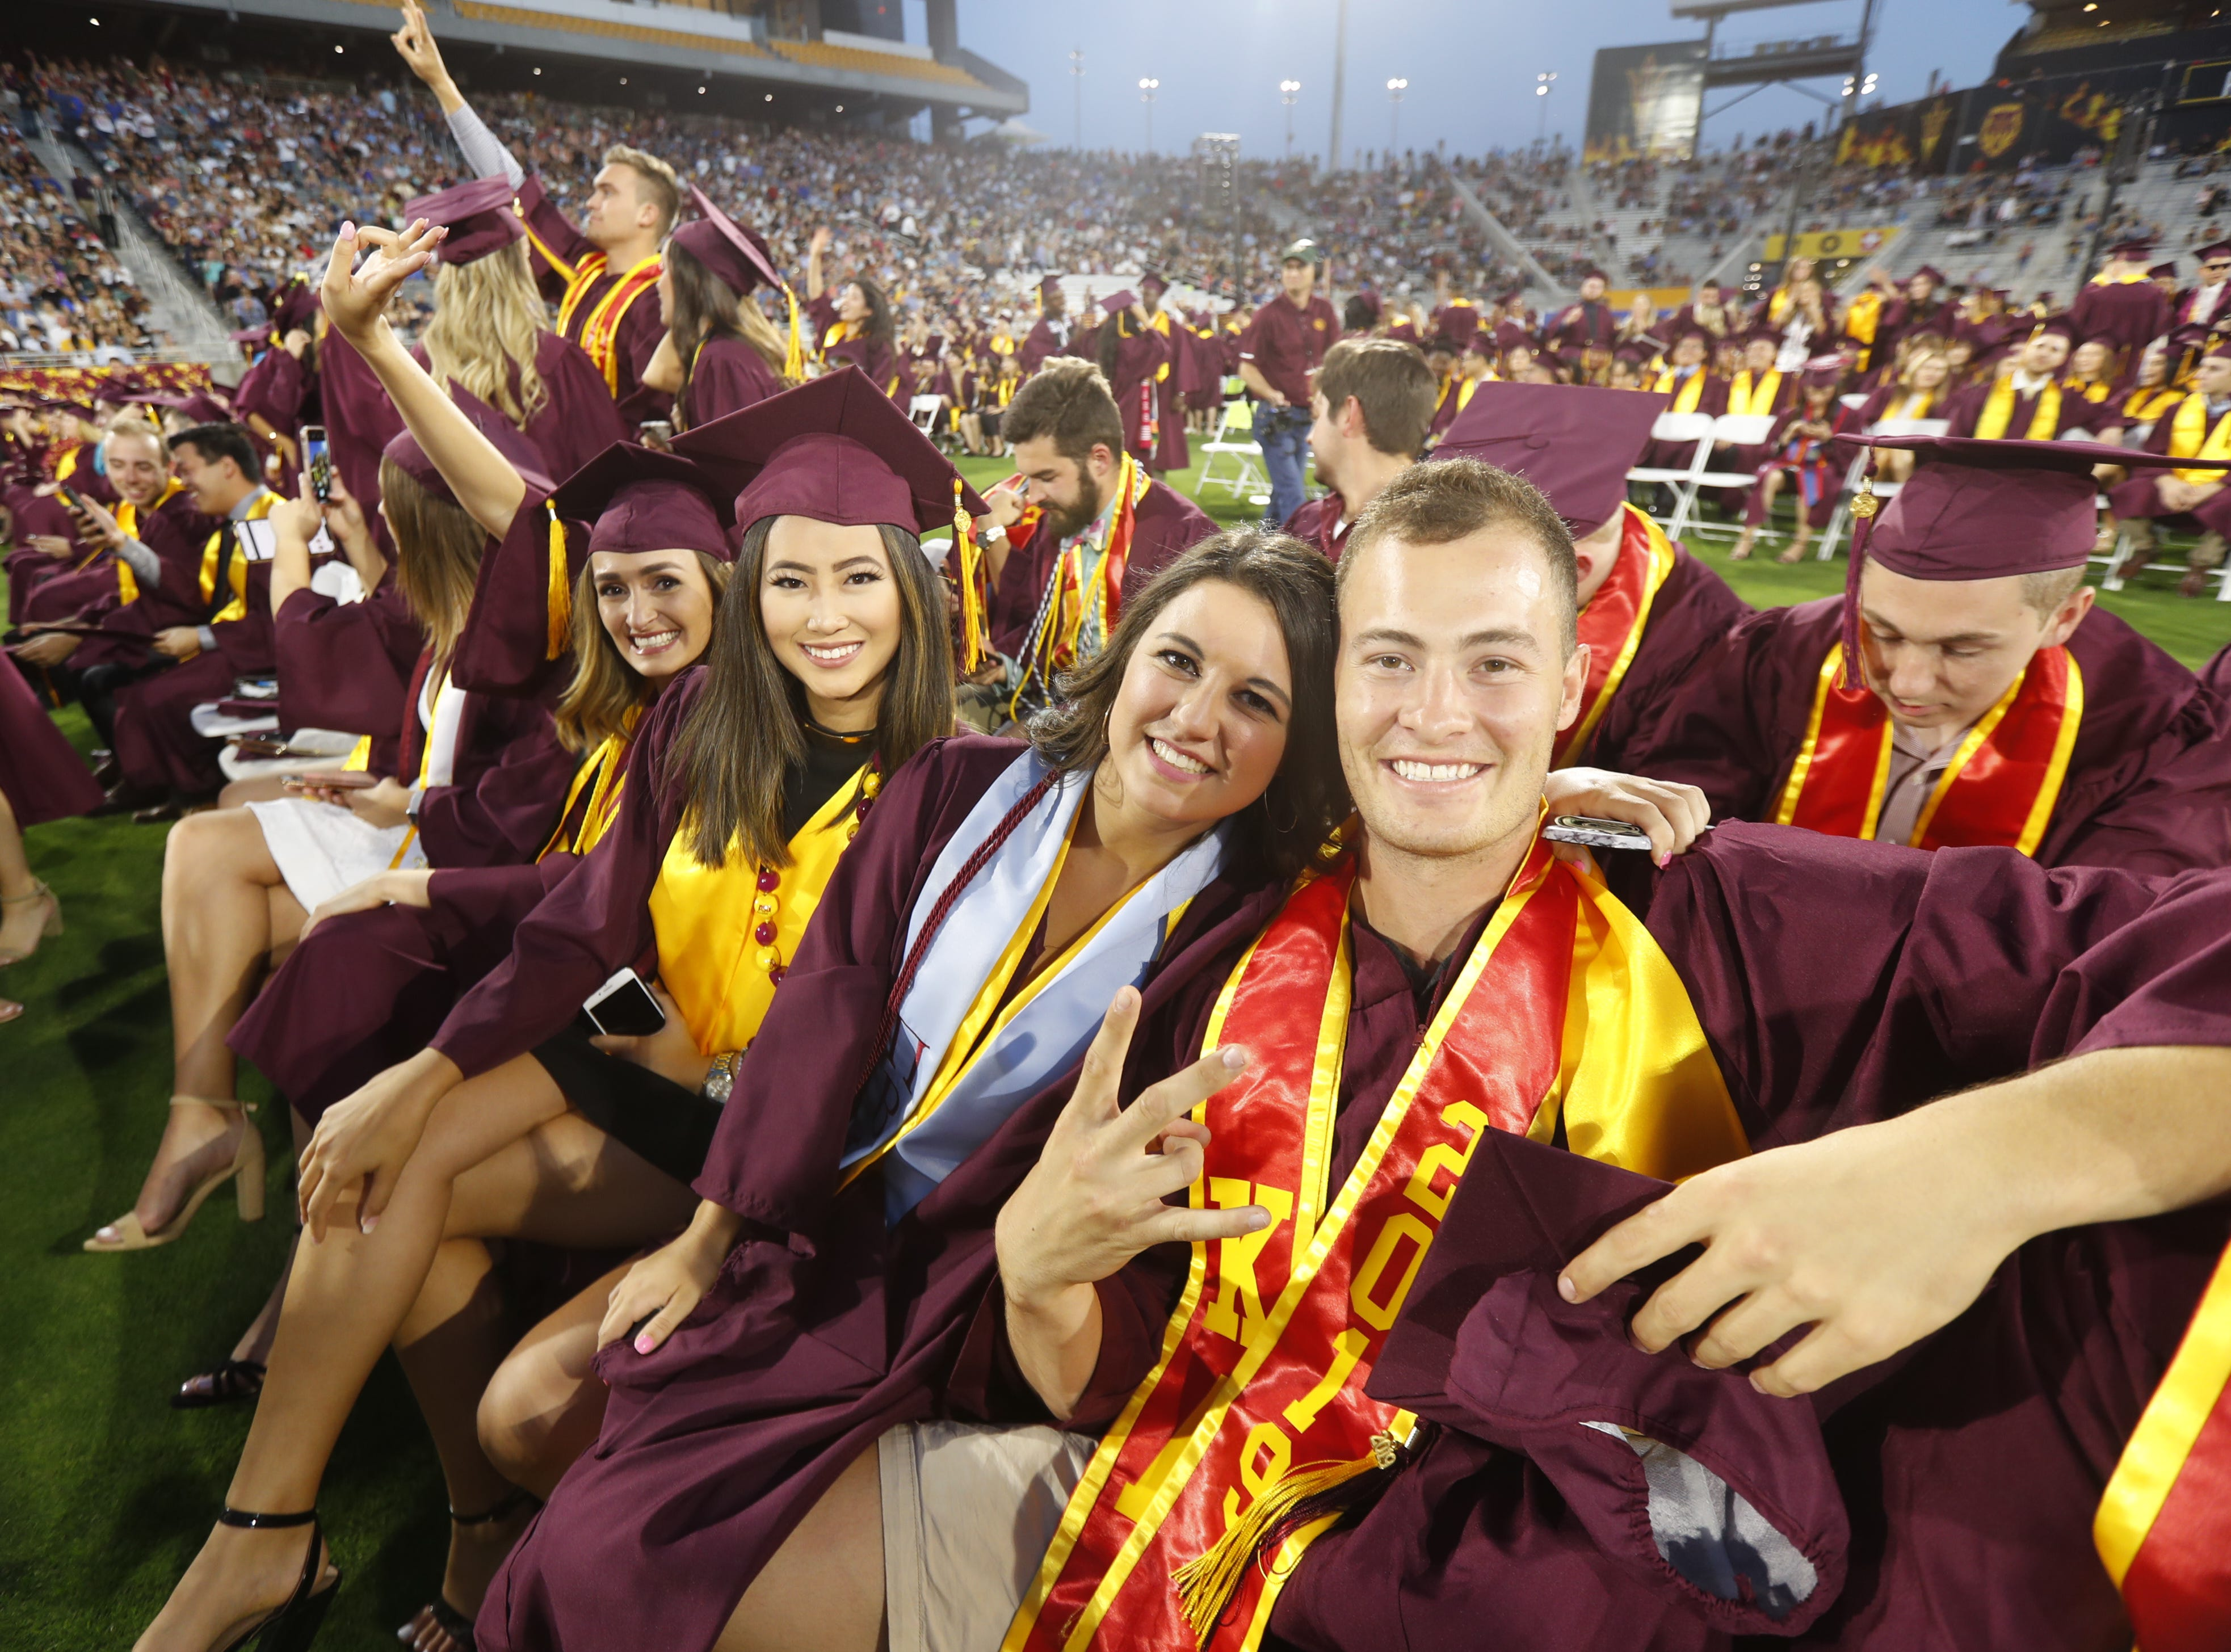 ASU graduates pose for pictures before ASU's Undergraduate Commencement at Sun Devil Stadium in Tempe, Ariz. on May 6, 2019.